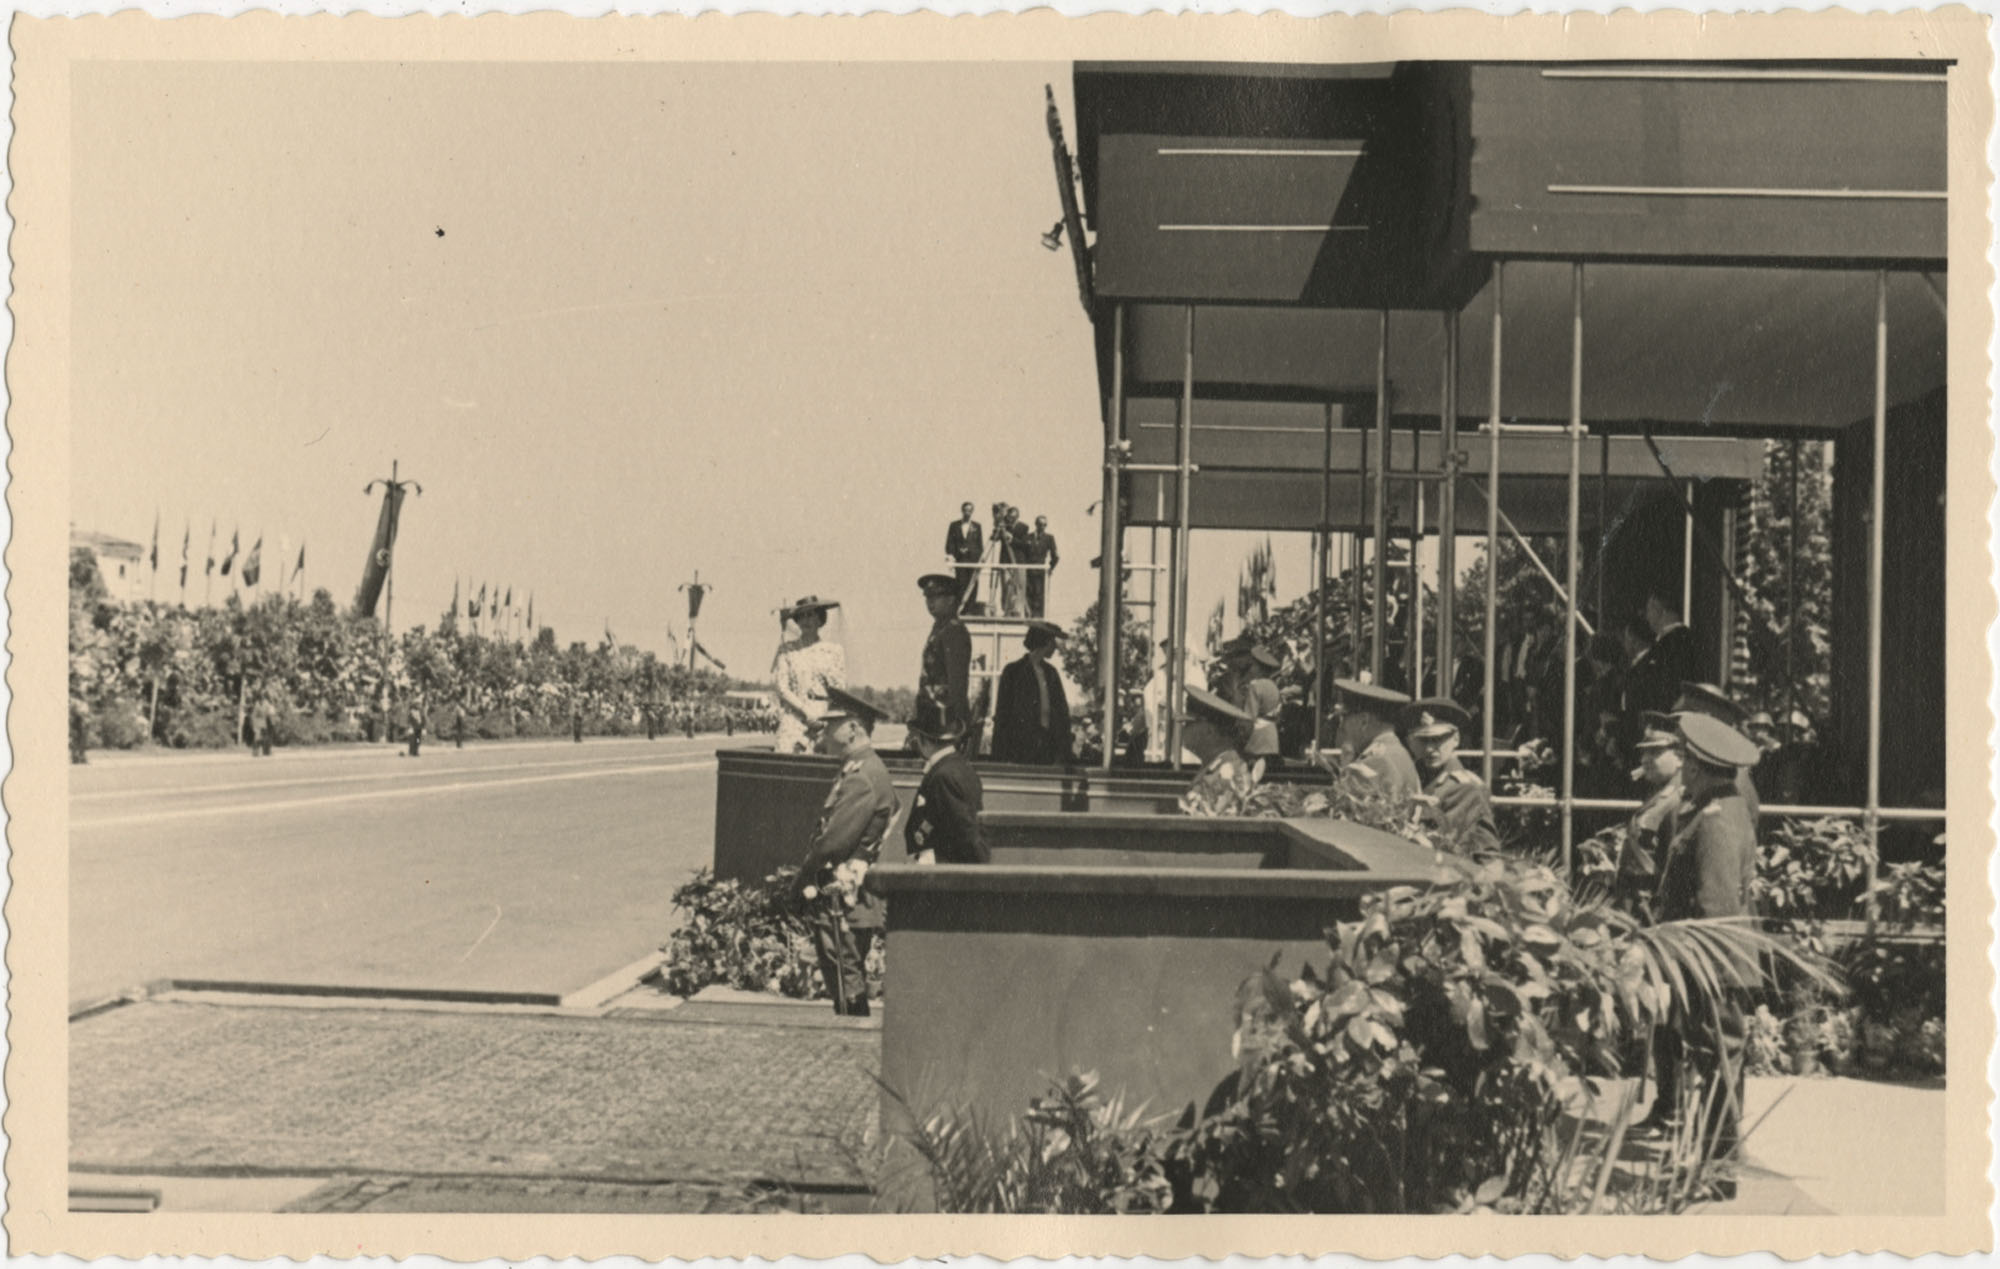 Officials observing a military ceremony, Photograph 5